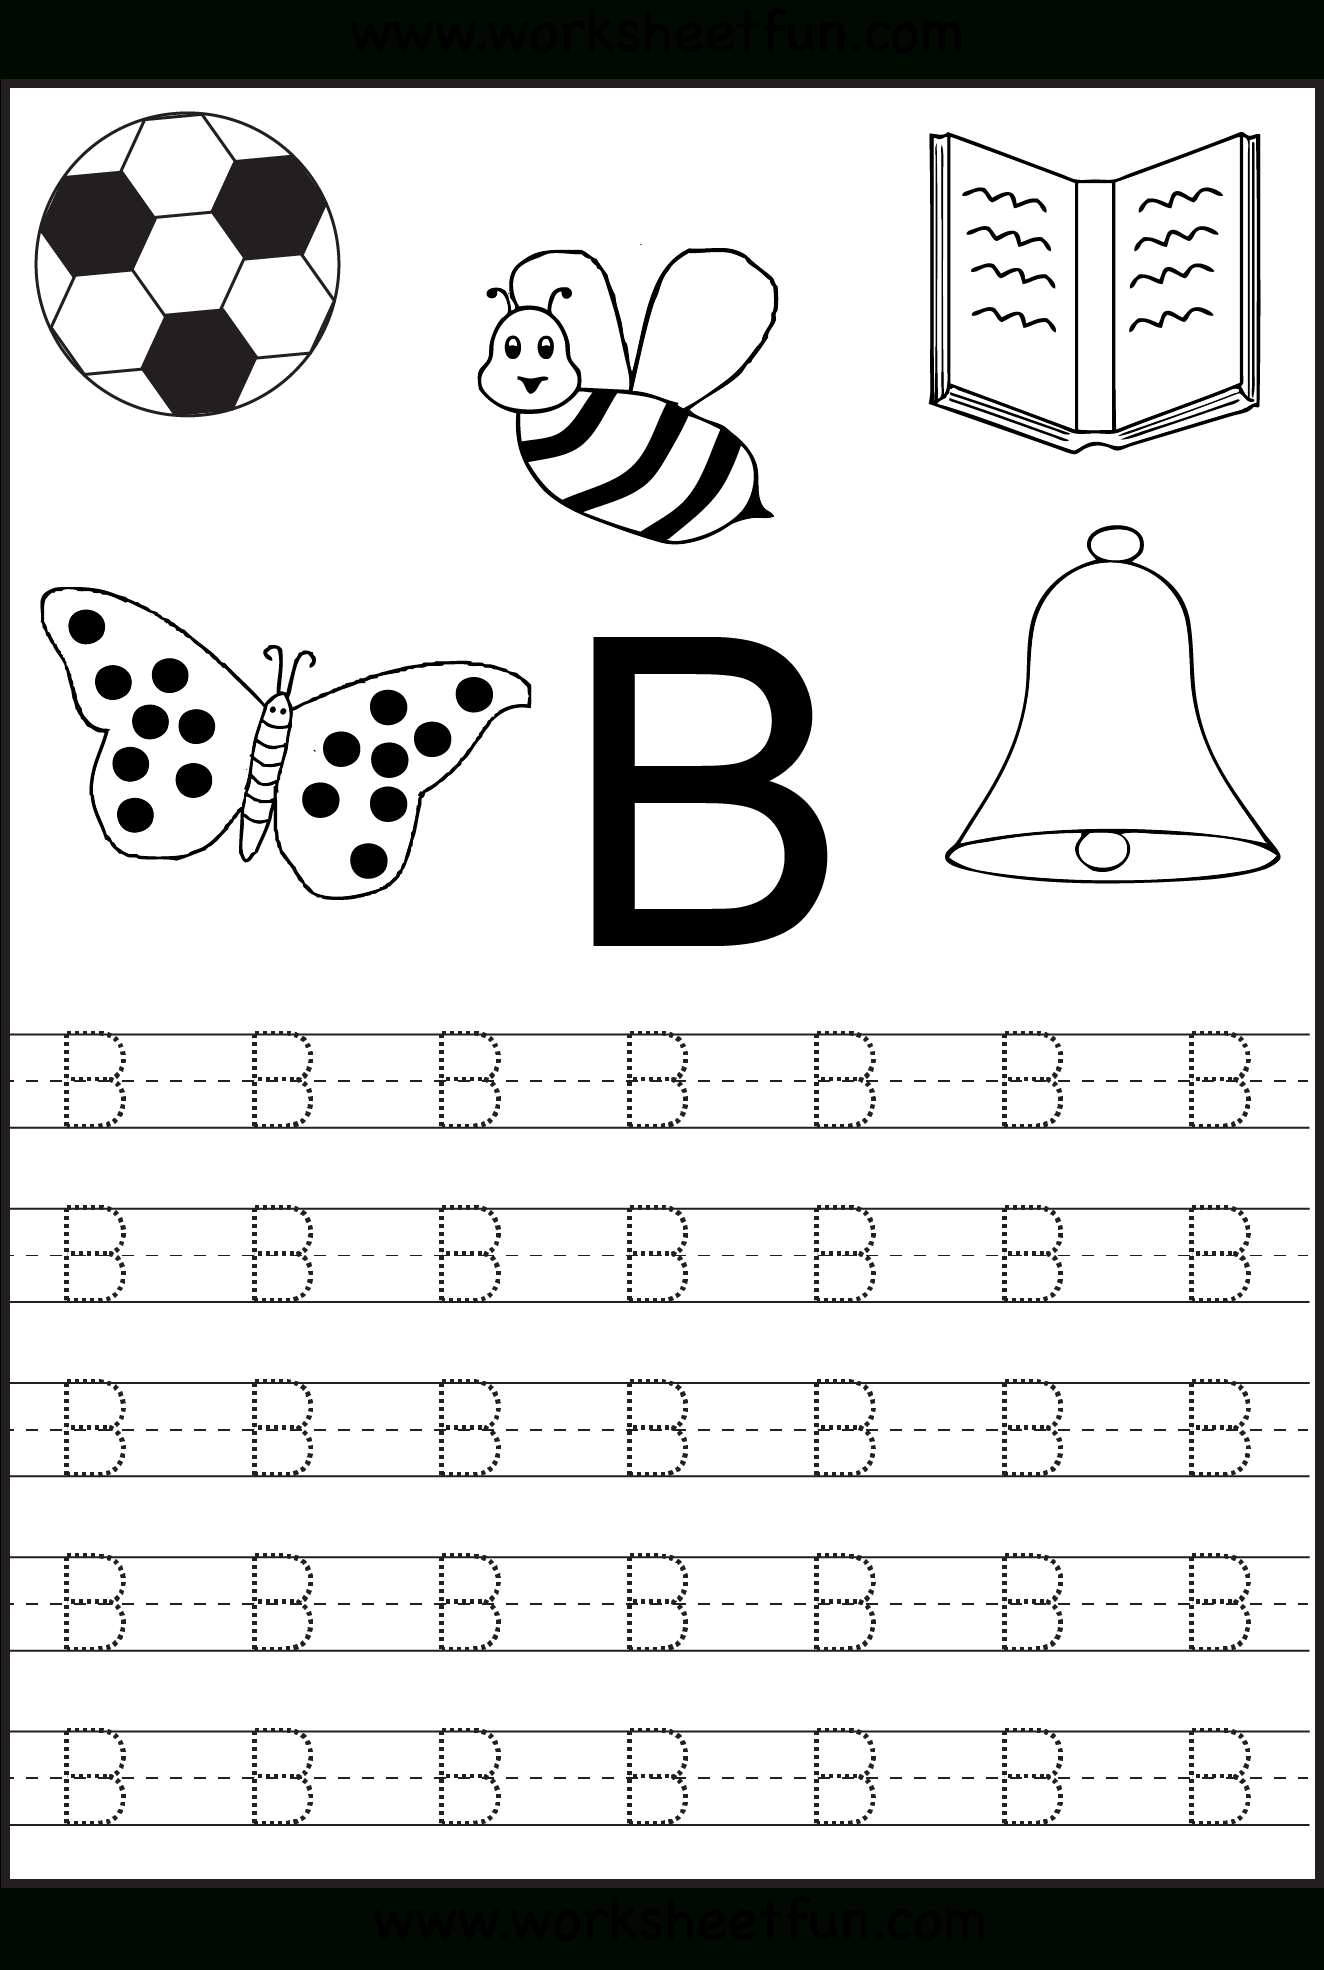 Free Printable Letter Tracing Worksheets For Kindergarten – 26 | Letter Tracing Worksheets Free Printable